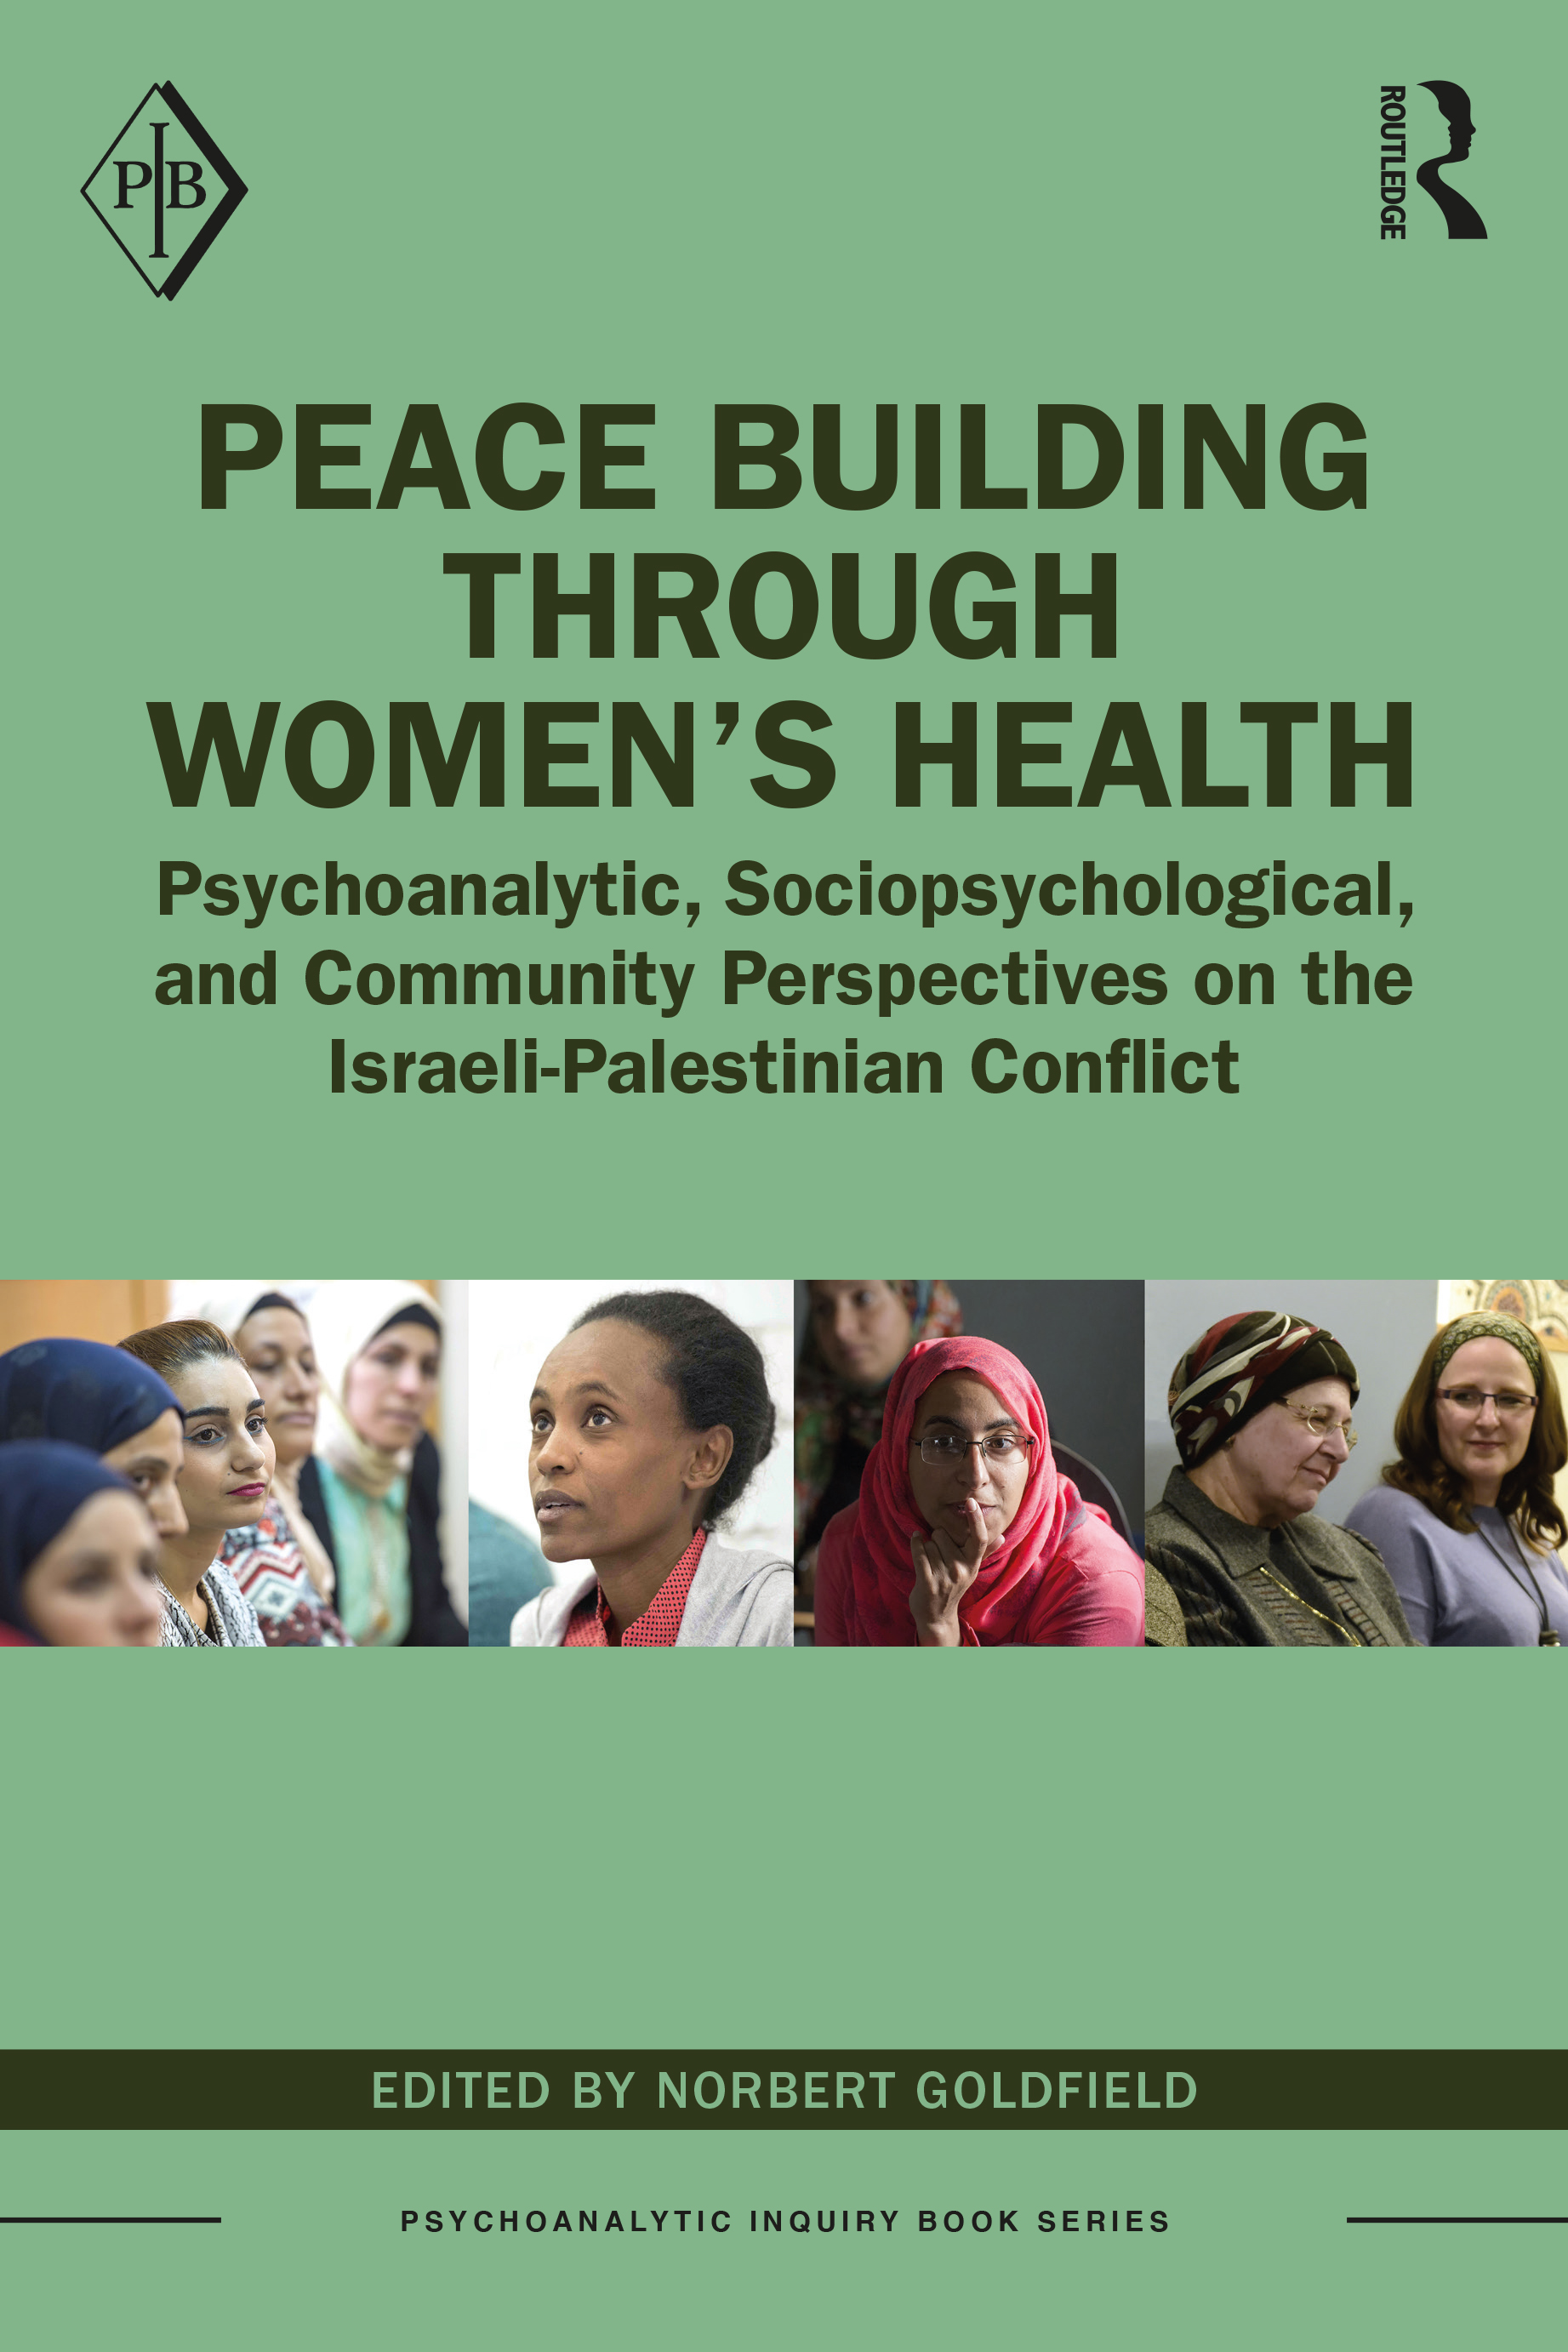 Family Defense SocietyDecreasing obesity and early detection of domestic violence in refugee camps and metropolitan Nablus, Occupied Palestinian Territory